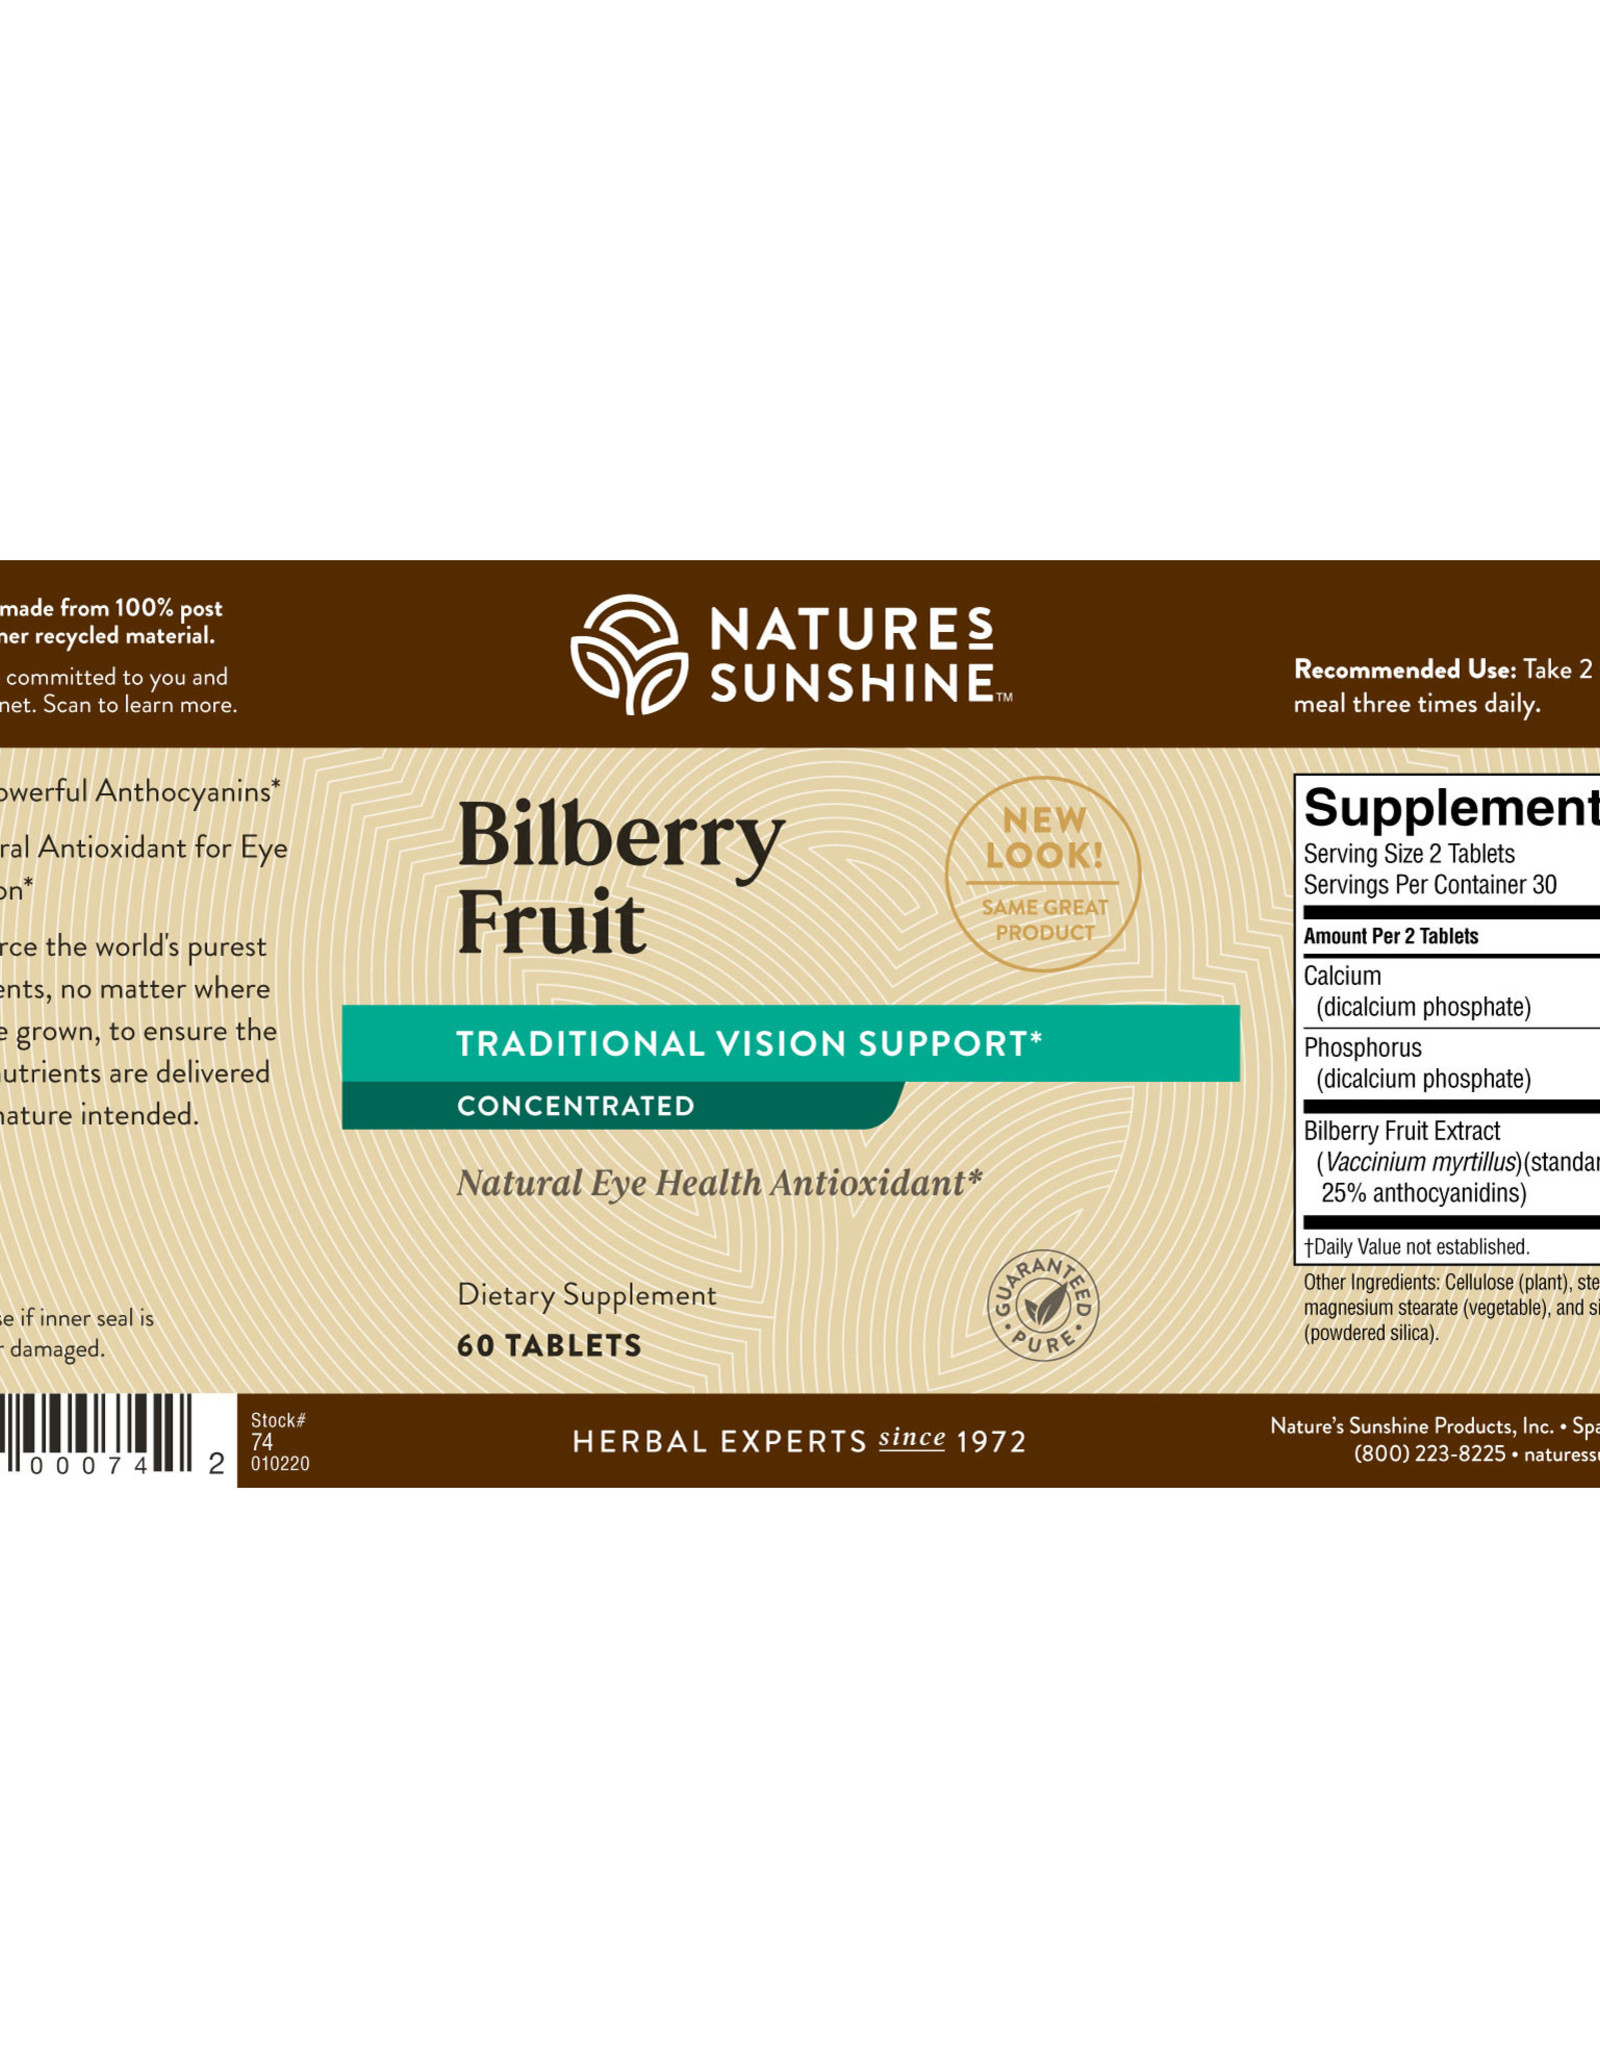 Nature's Sunshine Bilberry Fruit Concentrate (60 tabs)*